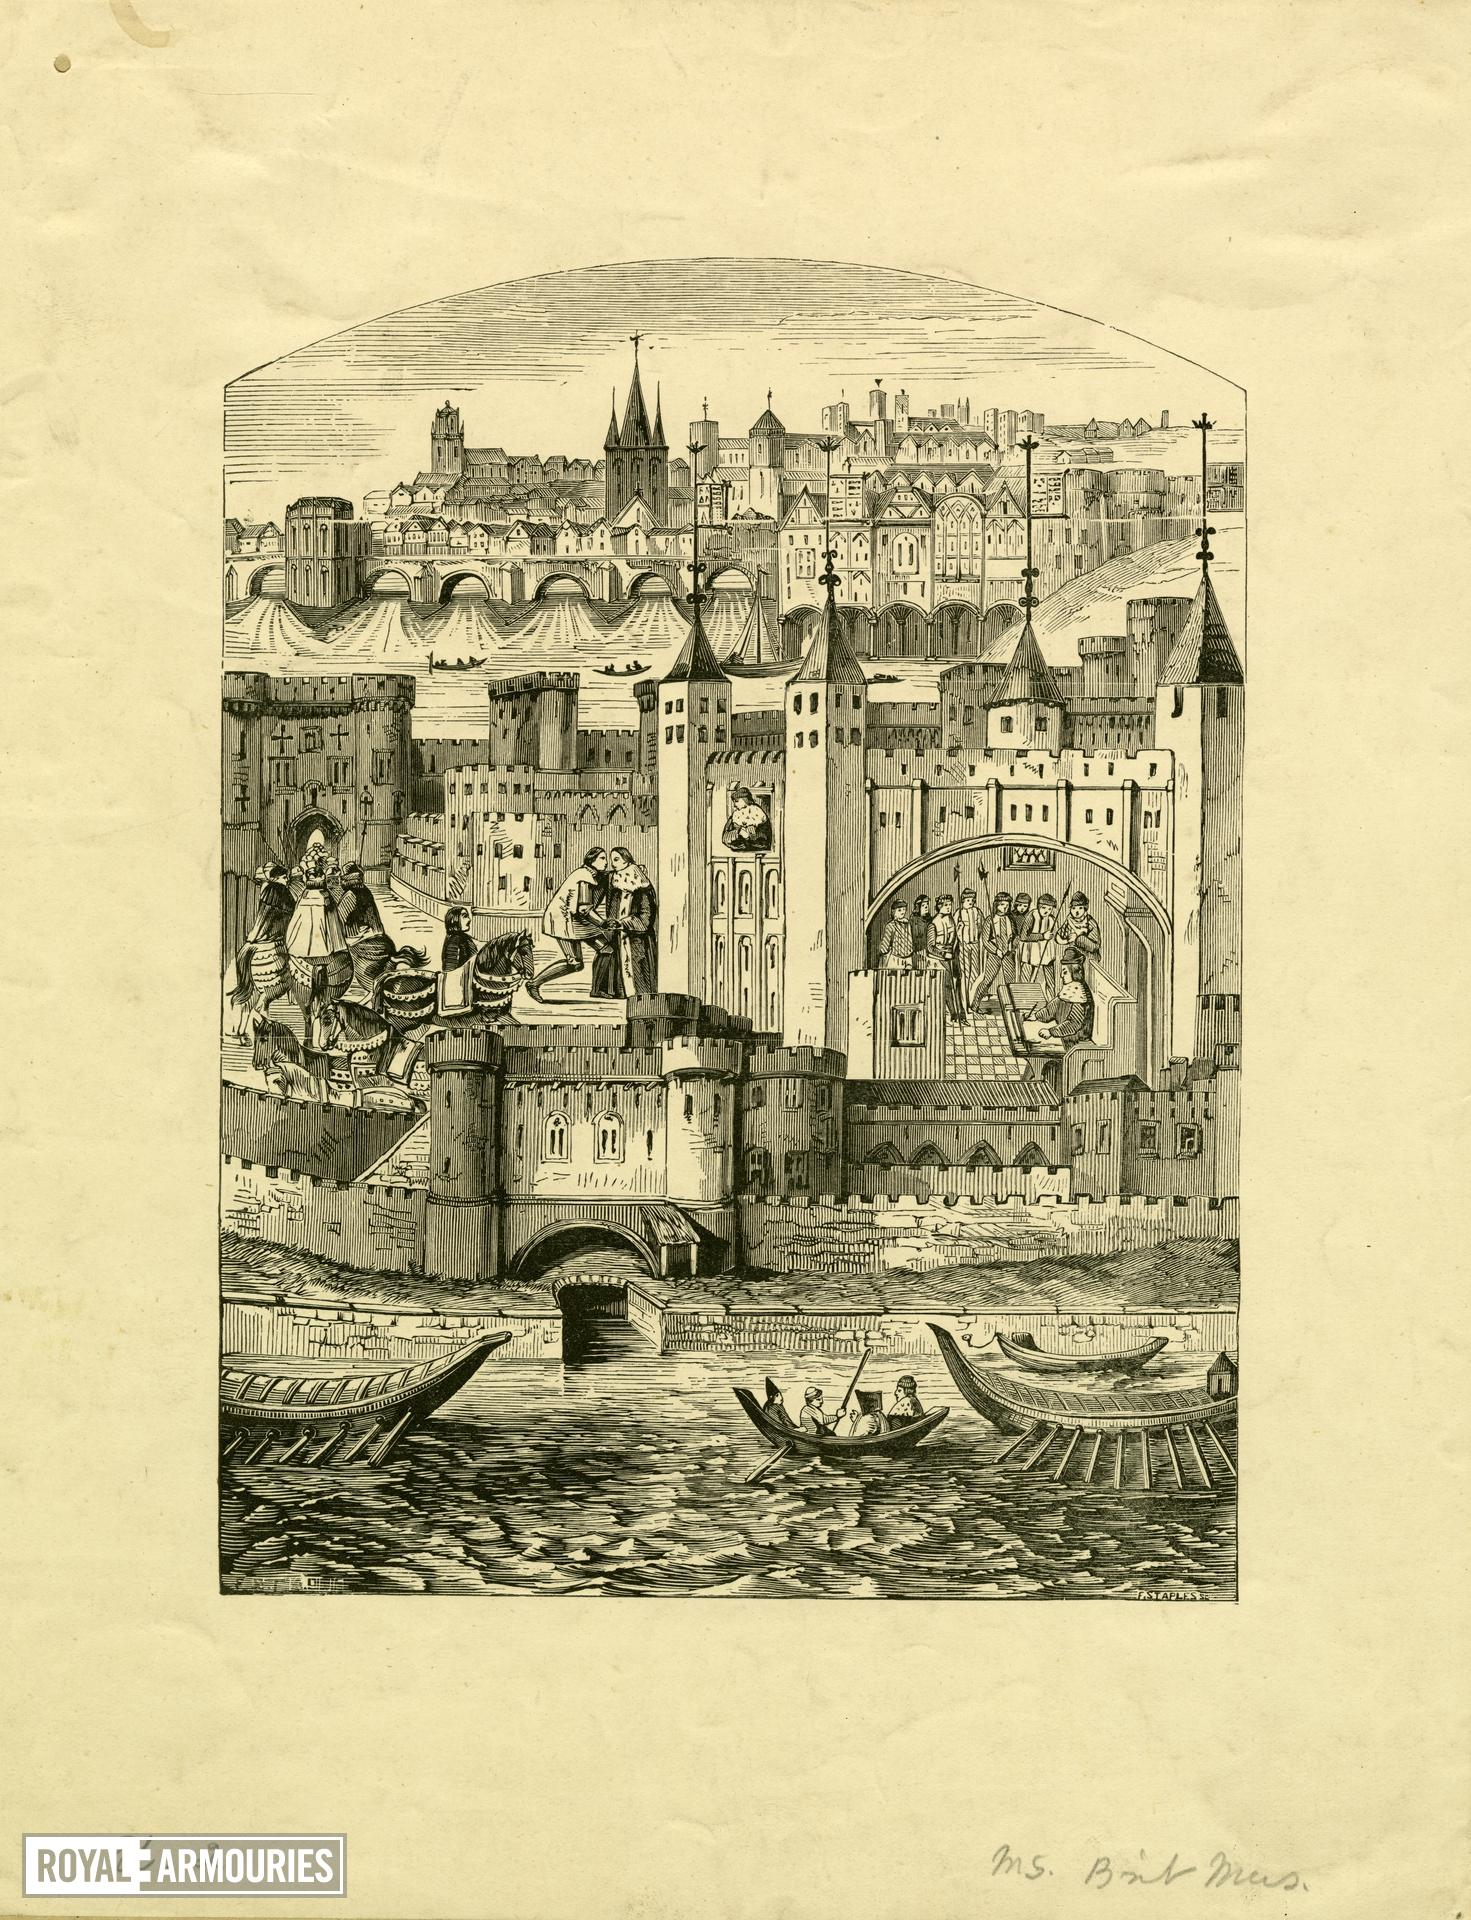 Duke of Orleans in the Tower of London